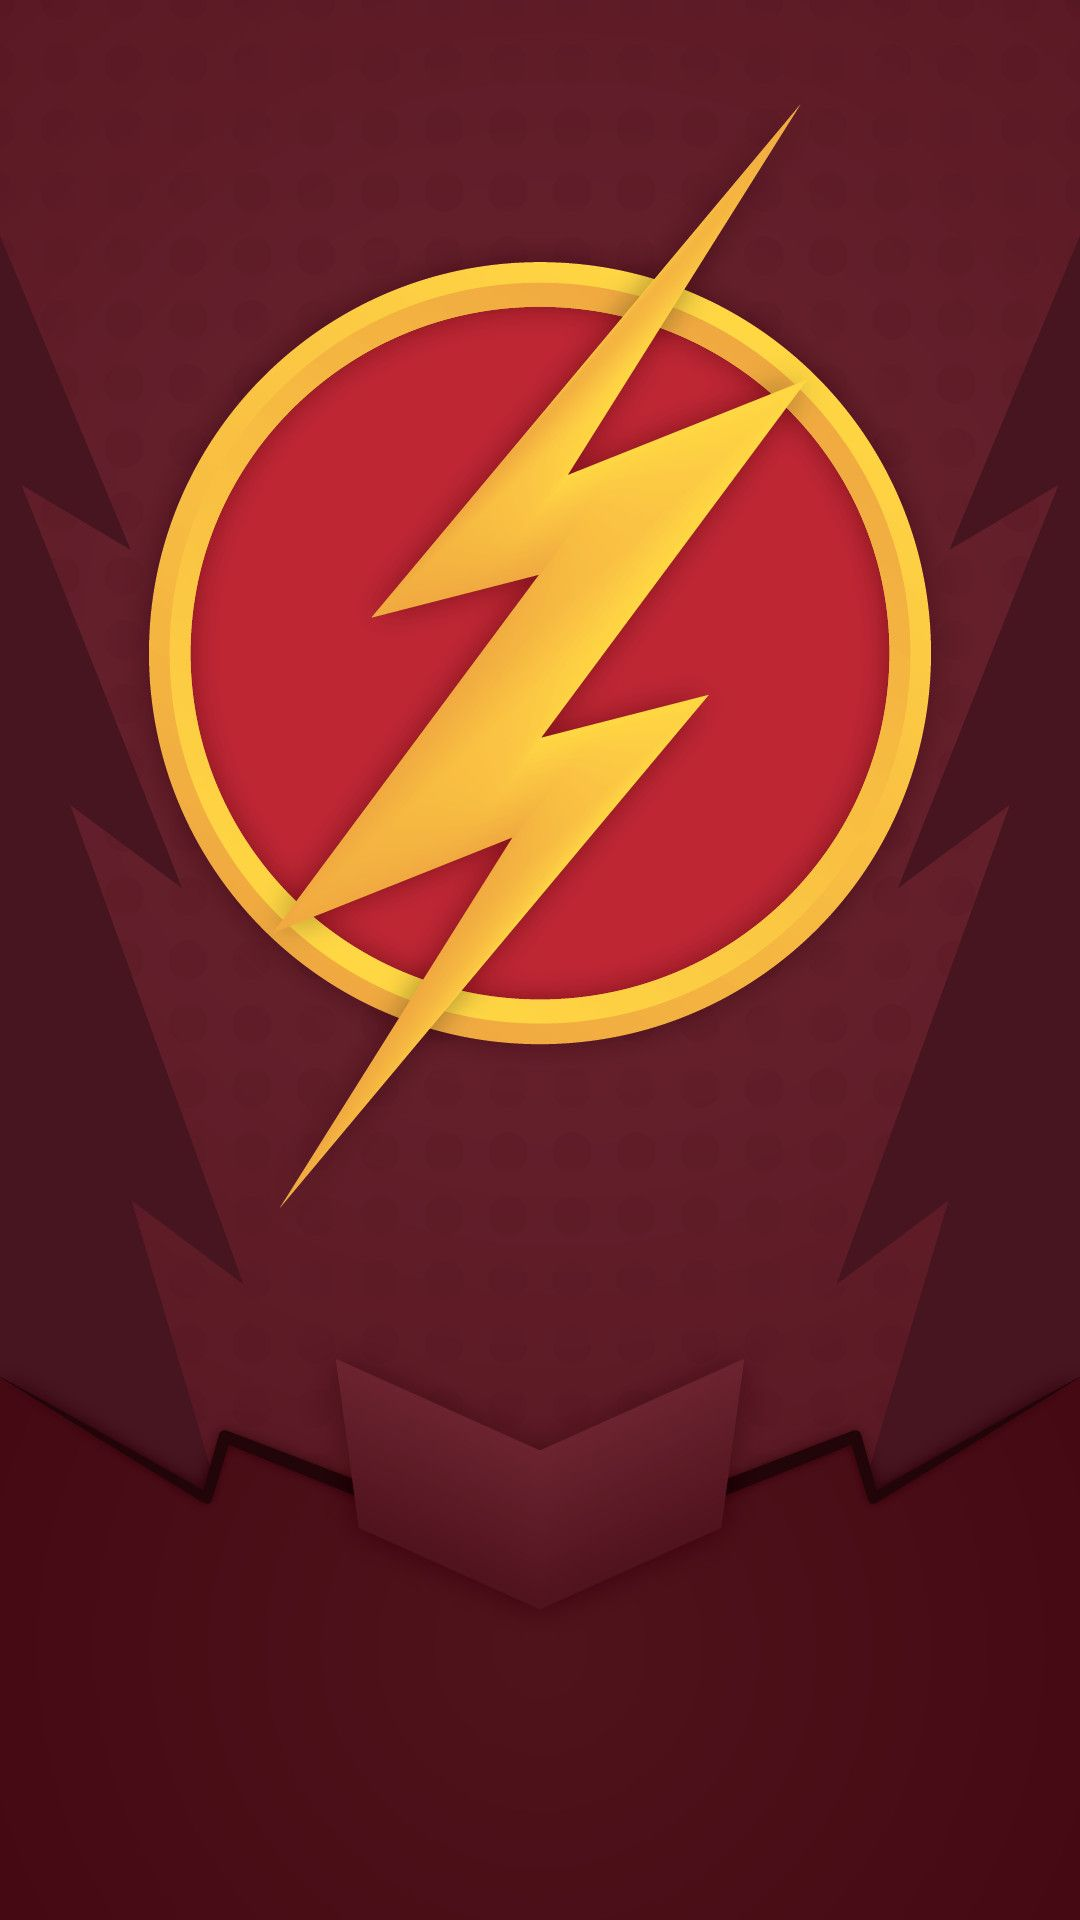 pictures of the flash superhero, flash superhero background